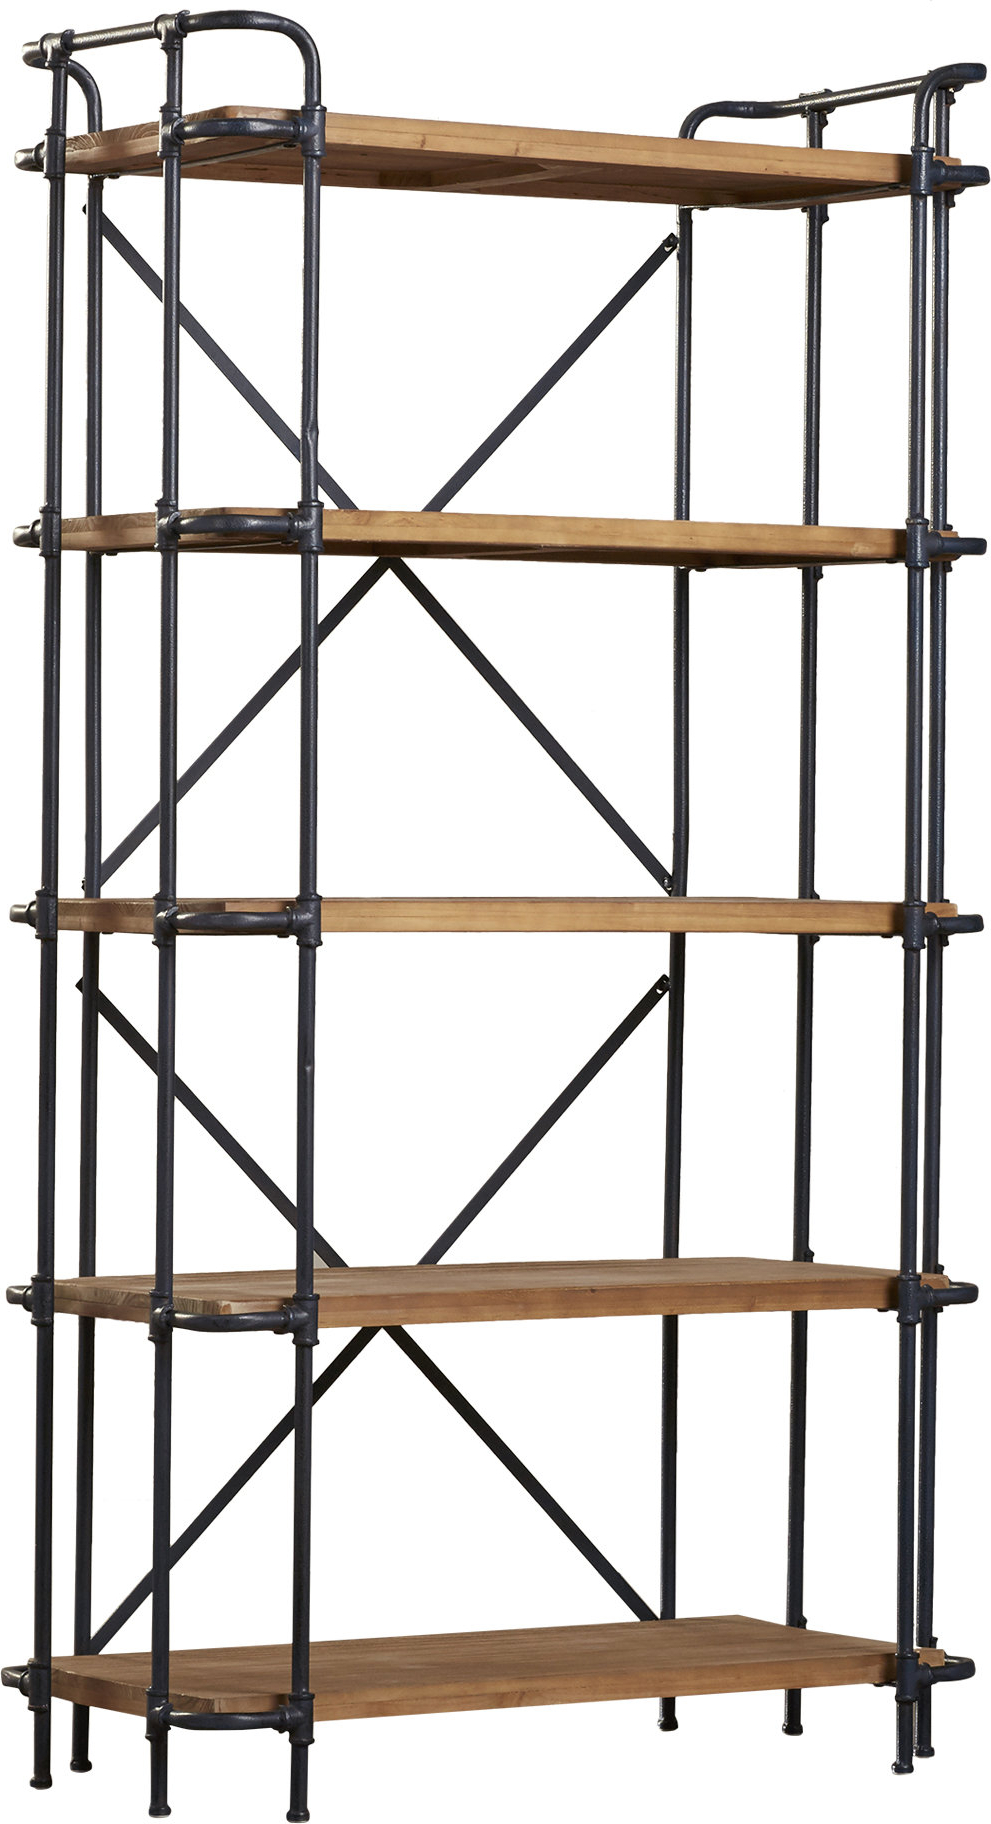 Beckwith Etagere Bookcases Pertaining To Most Popular Trent Austin Design Etagere Bookcase (View 3 of 20)